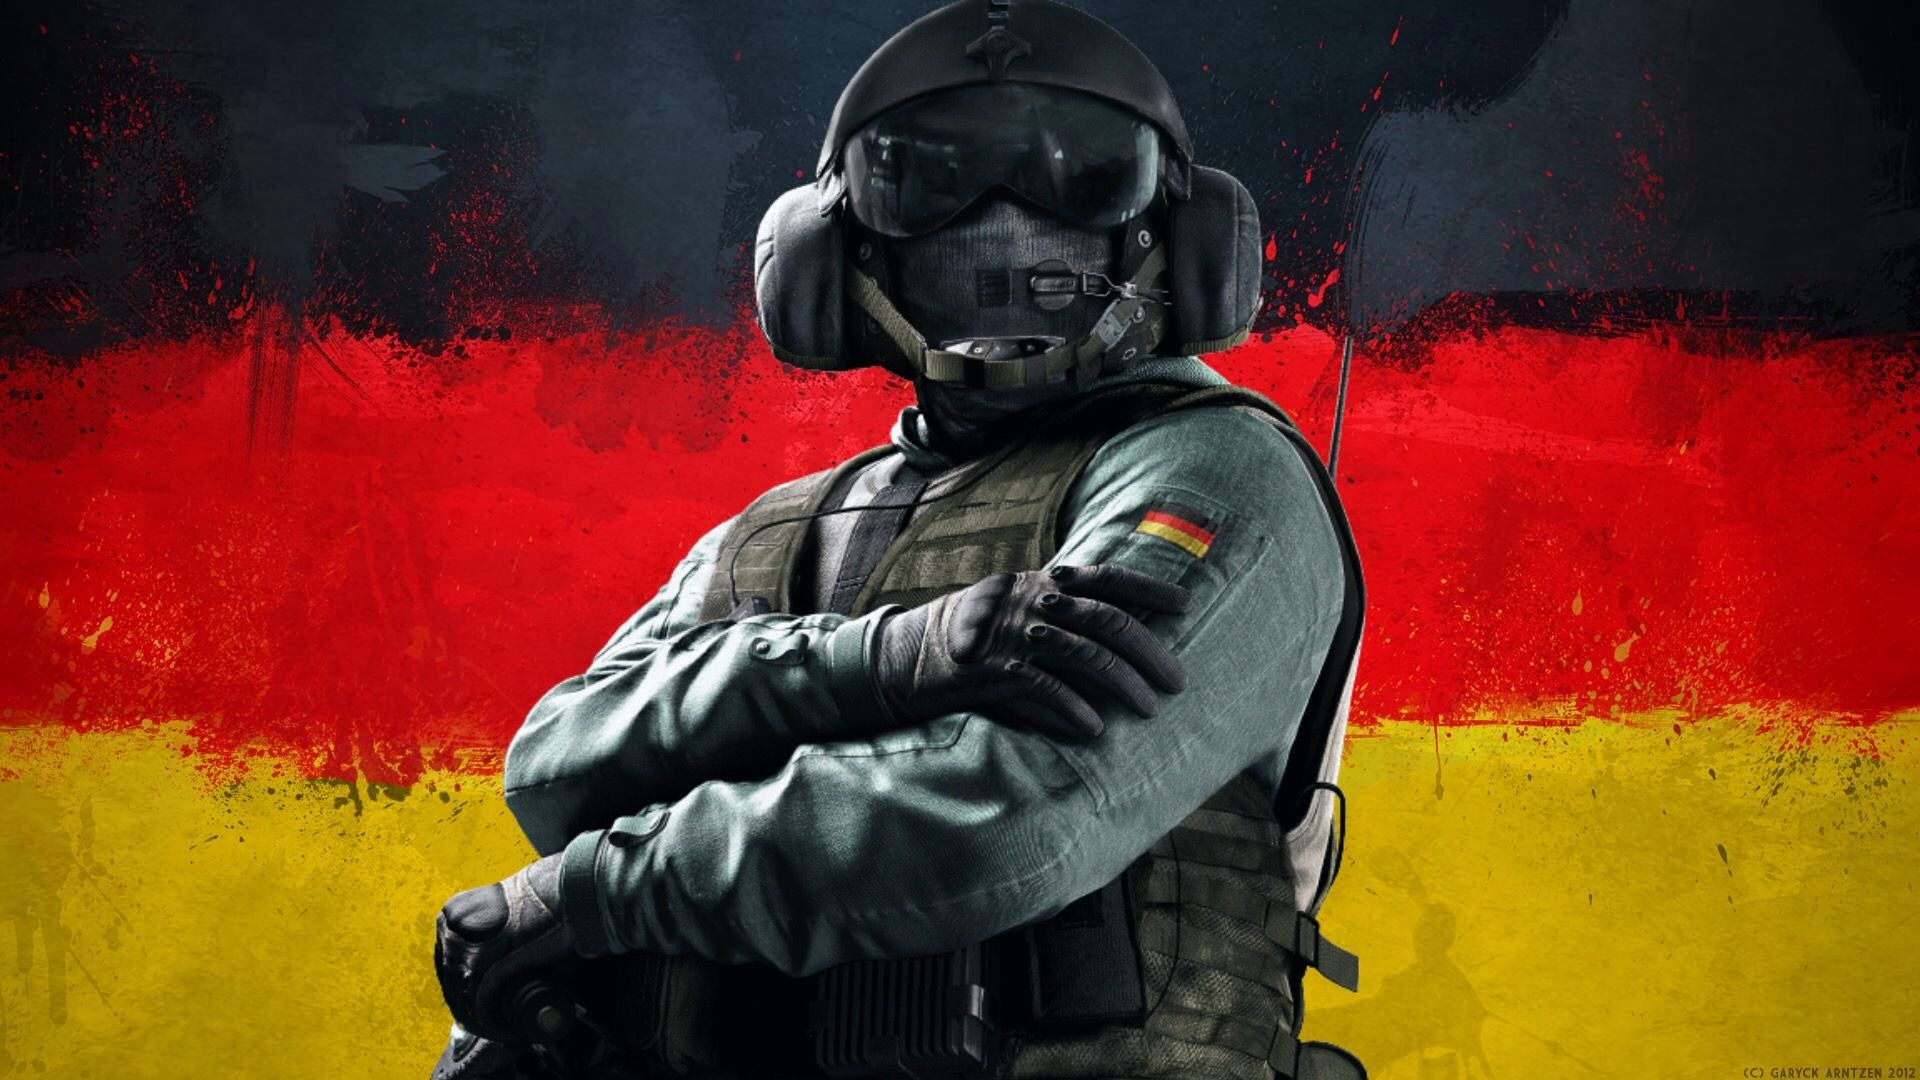 Pin by Isaiah Terry on RainbowSixSiege Pinterest Geeks